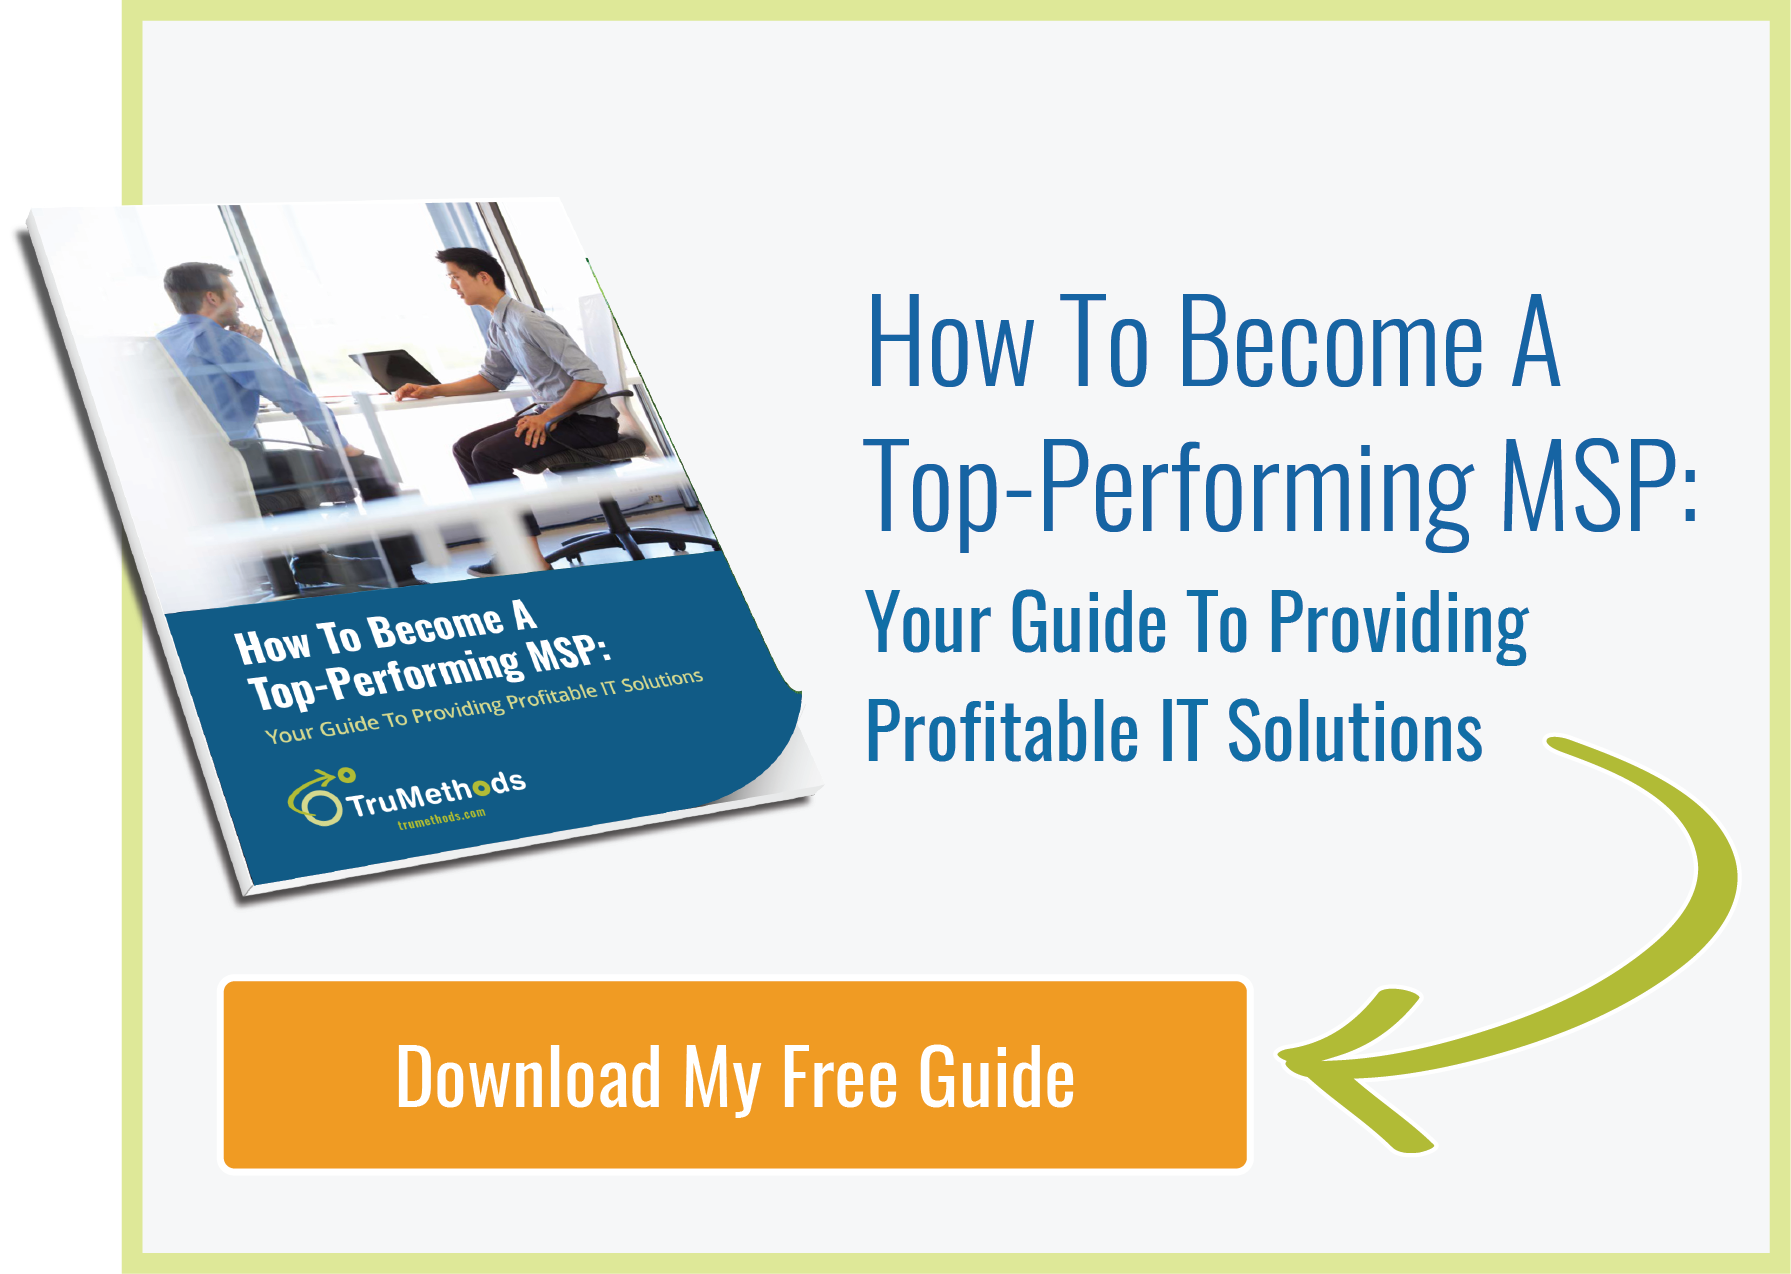 Download My Free Guide